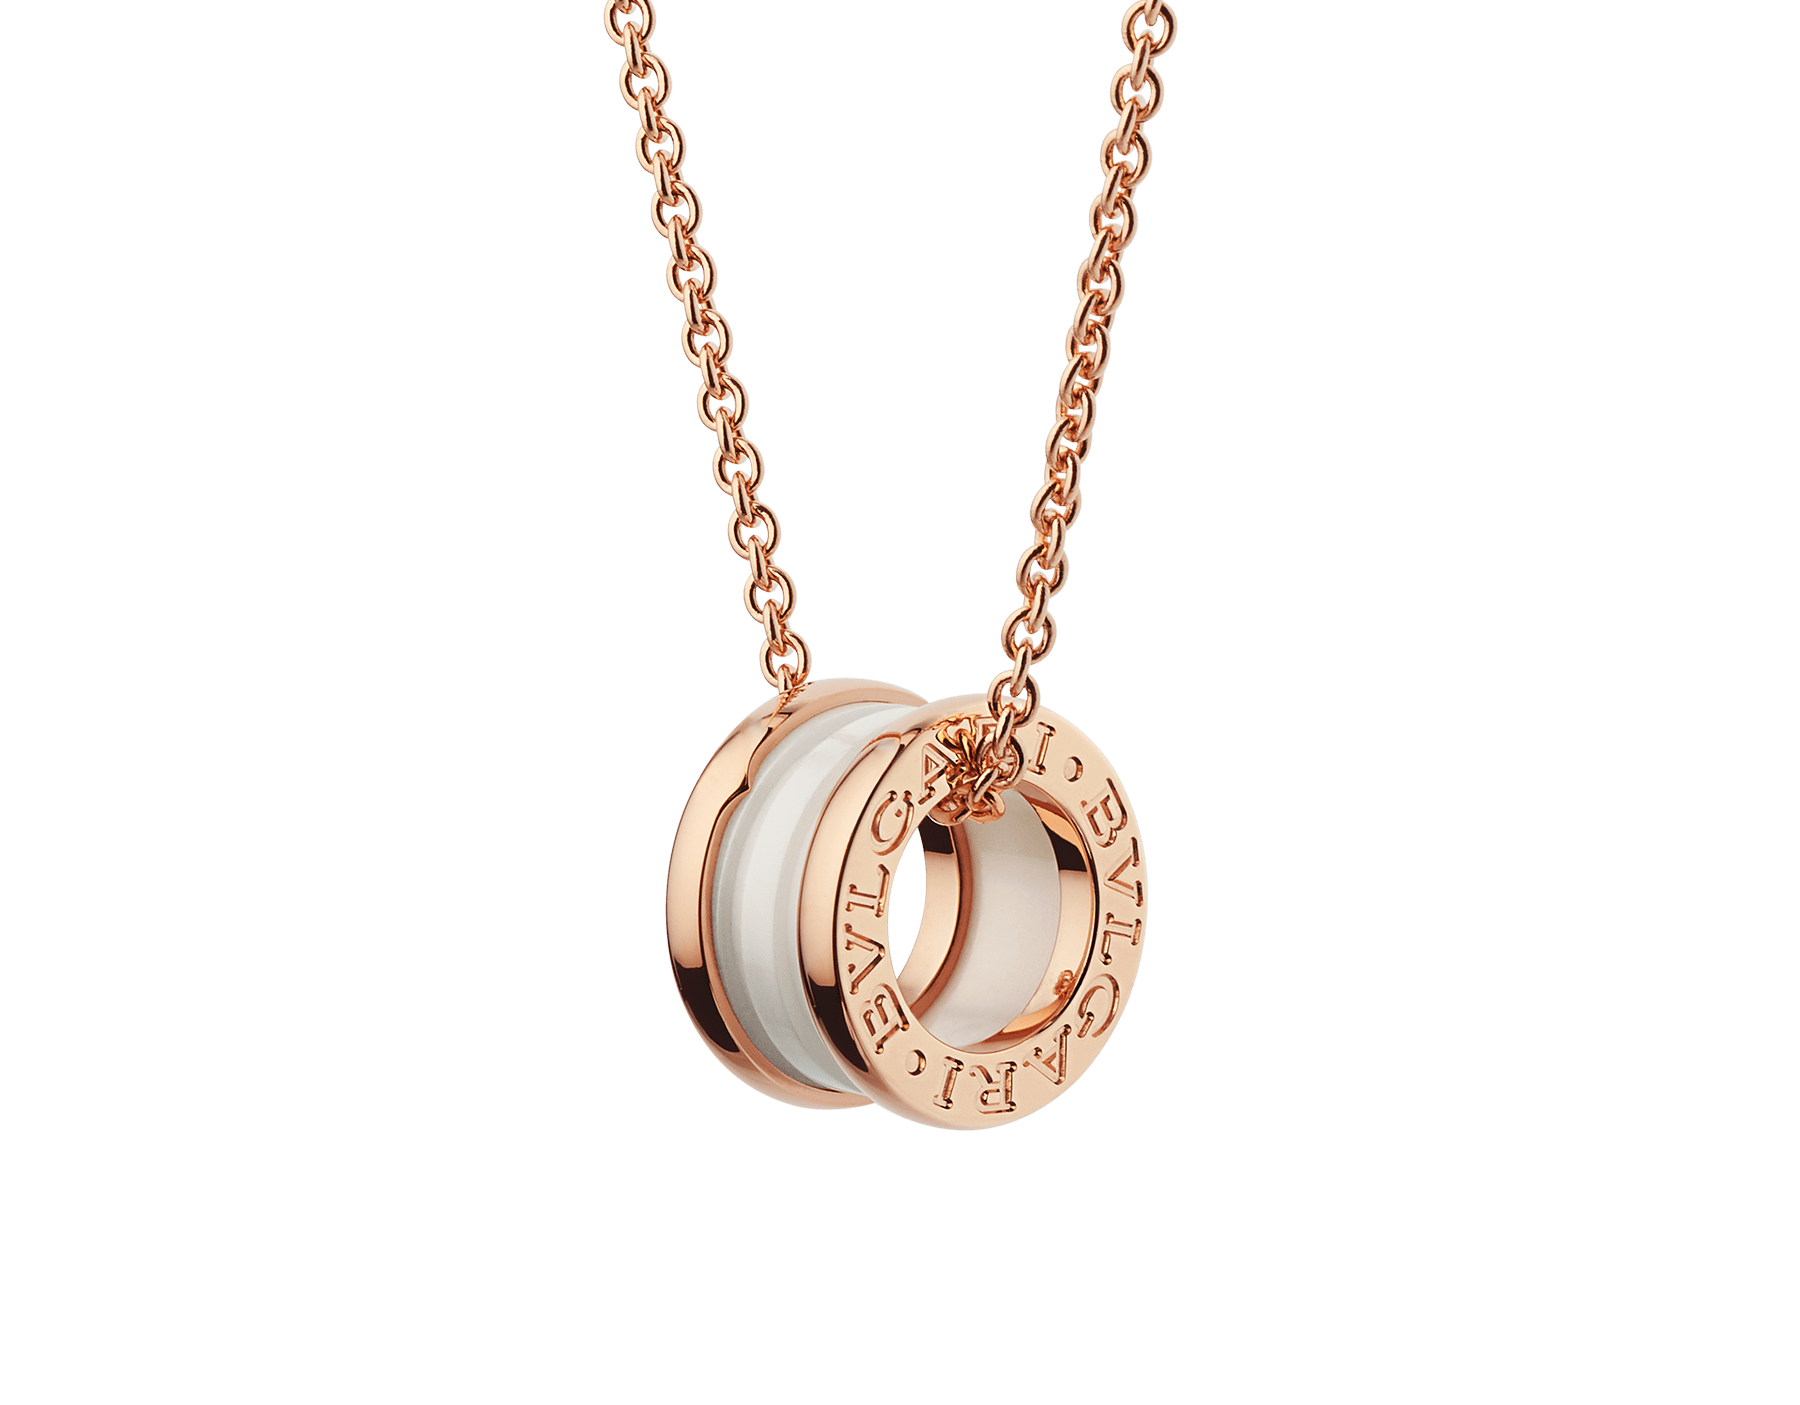 B.zero1 necklace with 18 kt rose gold chain and with 18 kt rose gold and white ceramic pendant. 346082 image 1